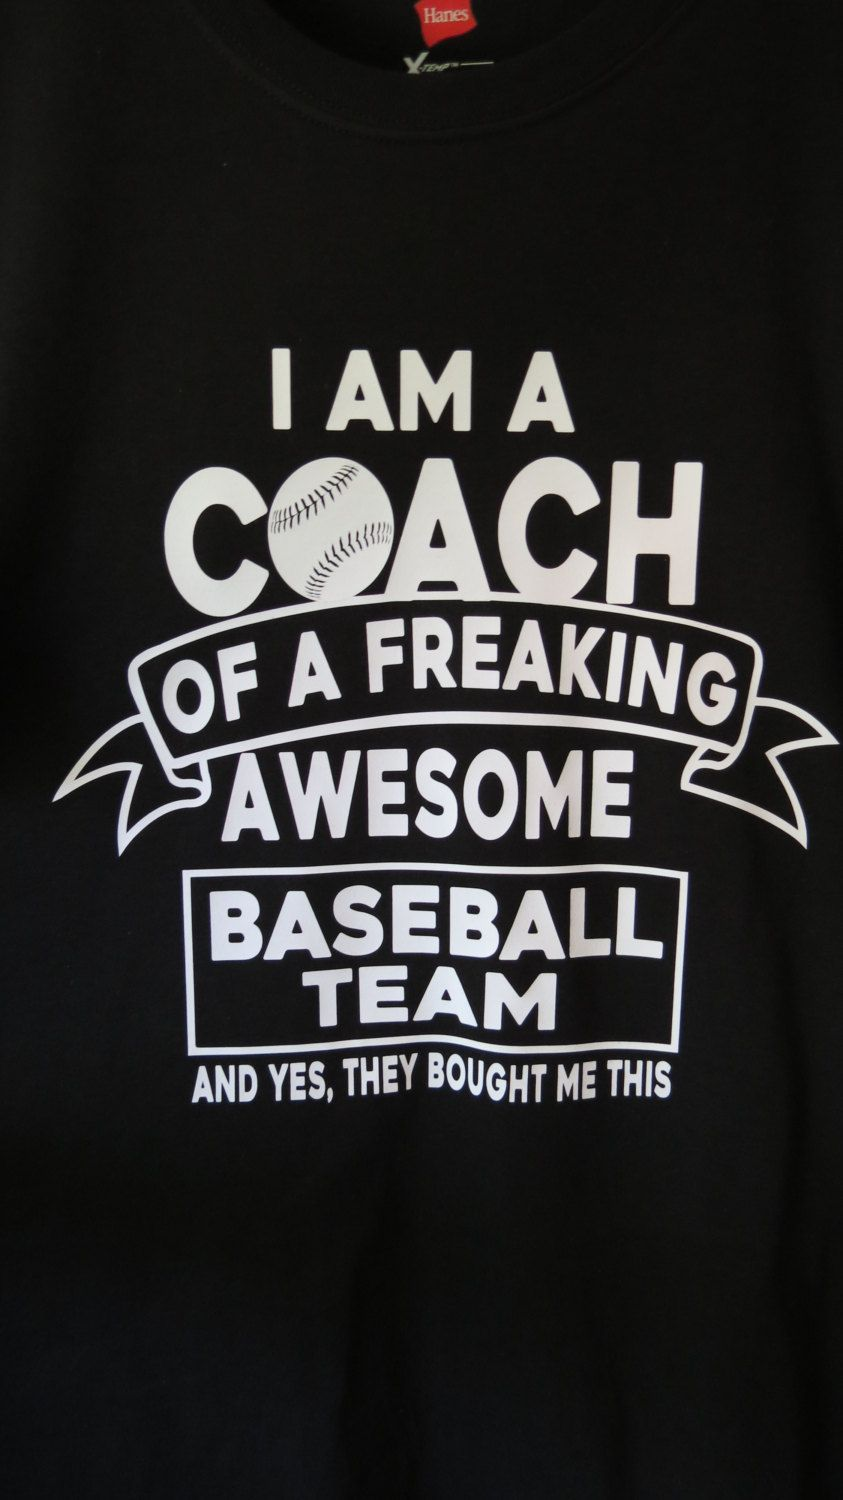 Funny Coach Shirt Softball Baseball Football Soccer Etsy Coach Shirts Balls Shirt Softball